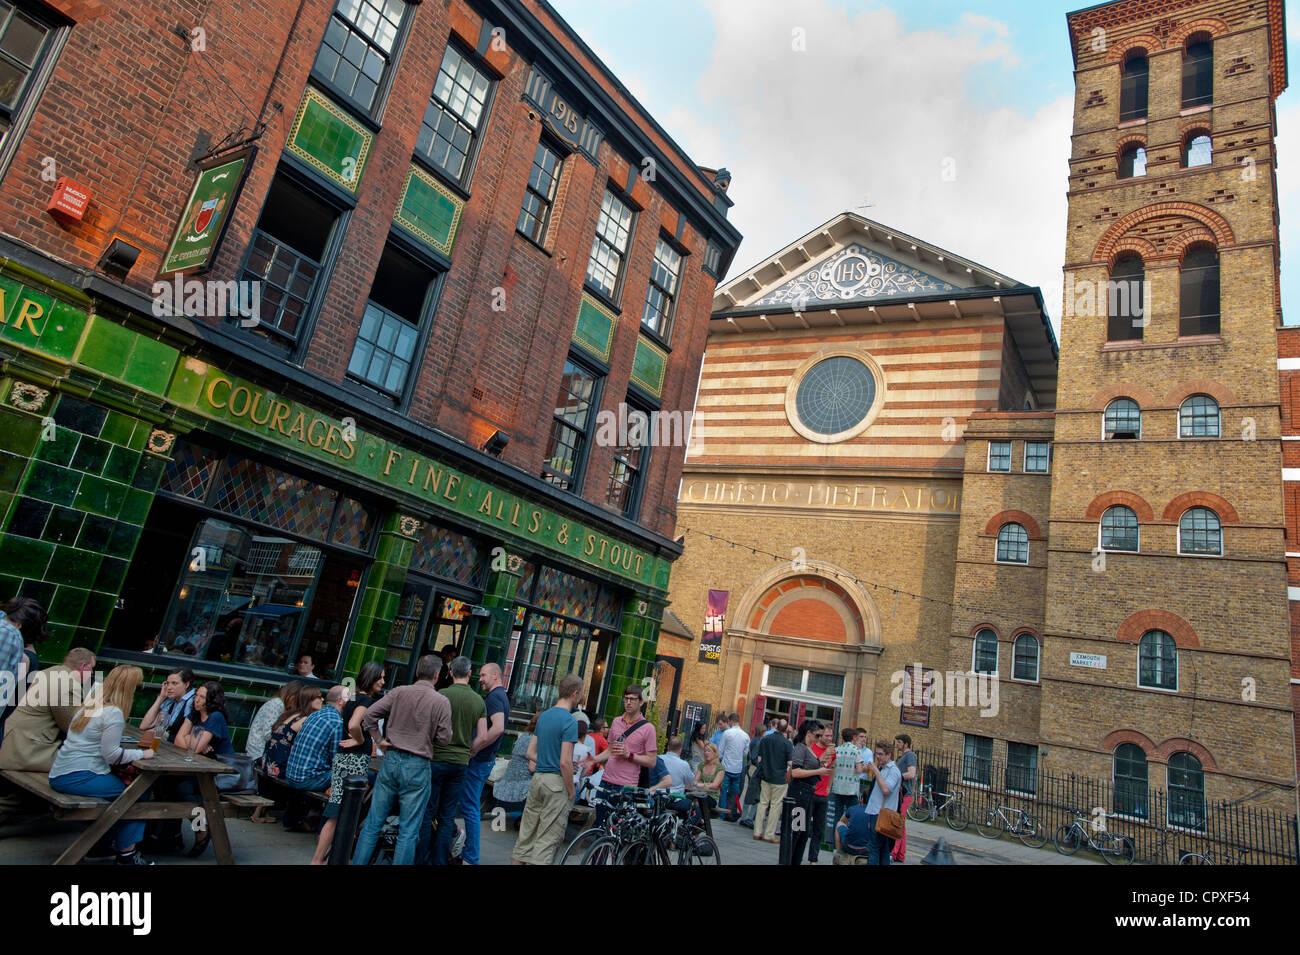 Bars and restaurants on Exmouth Market, London, United Kingdom - Stock Image